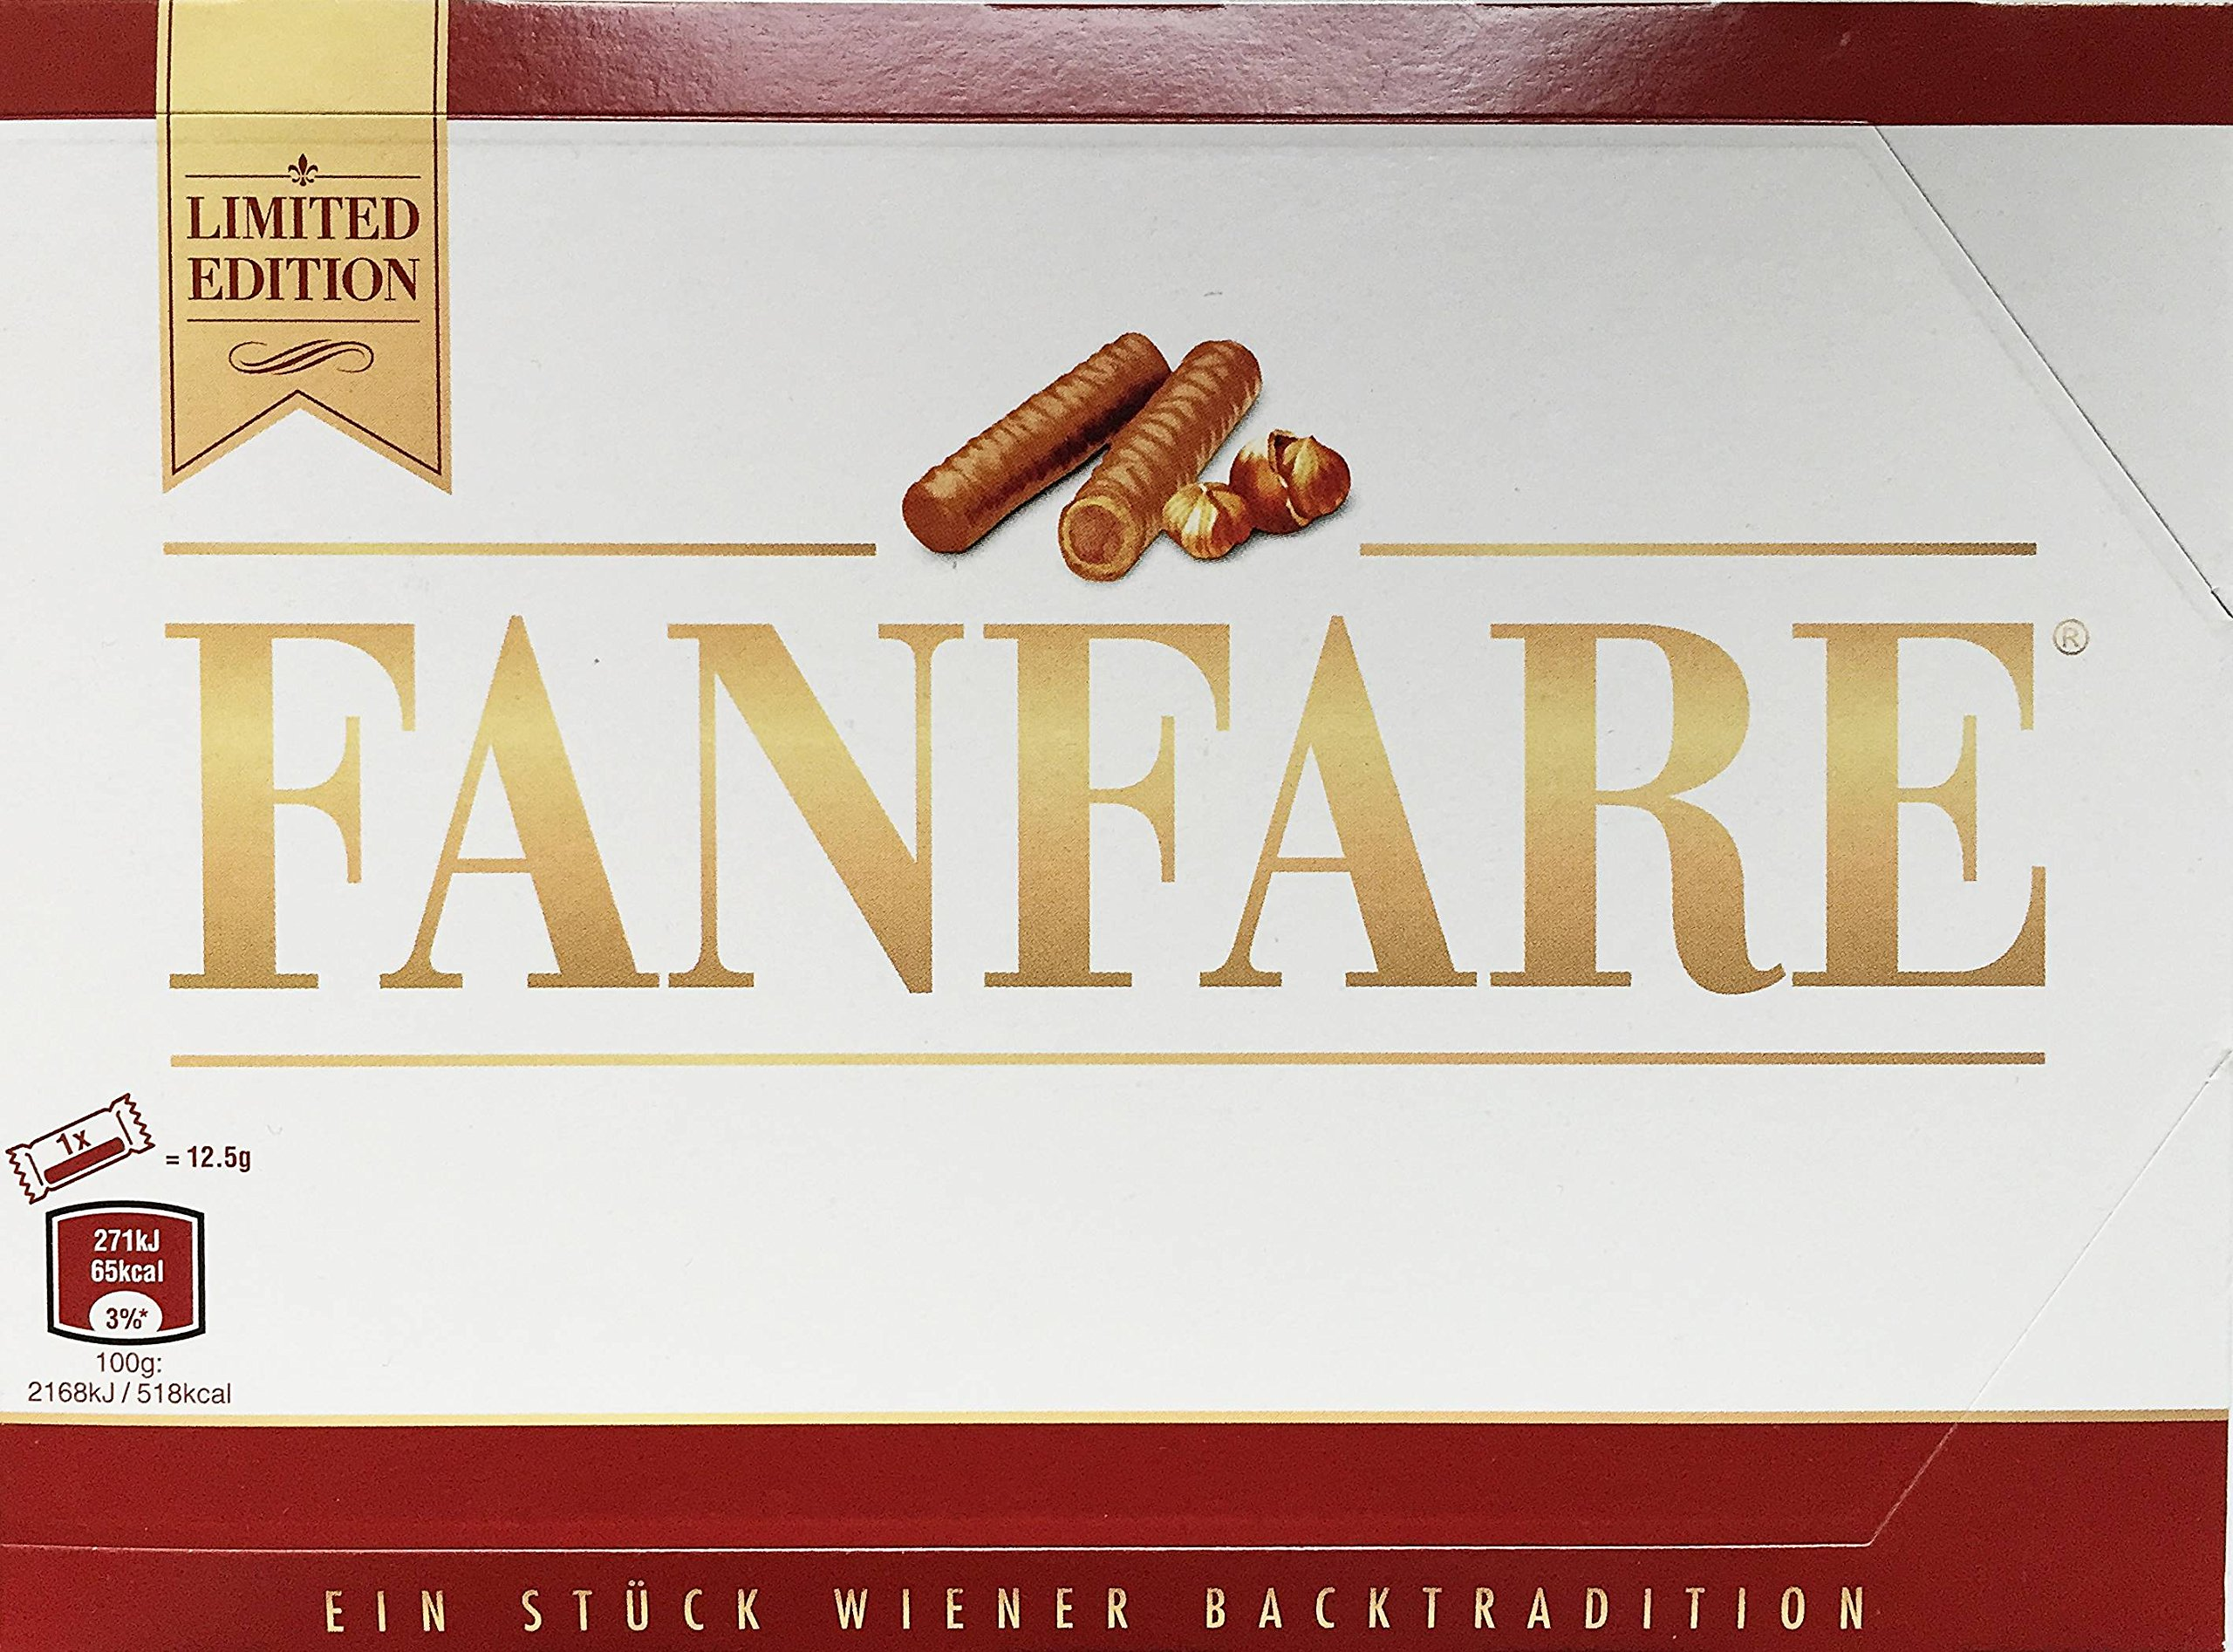 FANFARE Schokoröllchen Chocolate Rolls from Vienna, package with 150 Grams, SET OF 4 PACKAGES, total 600 GRAMS